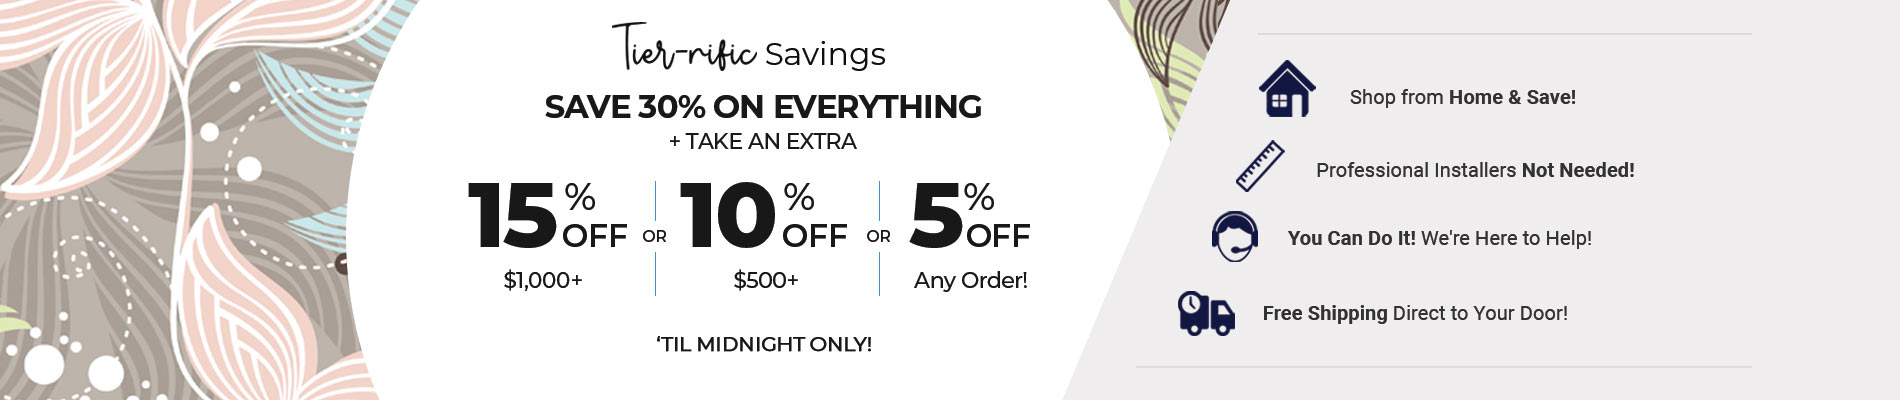 Save 30% + Up To Extra 15% Off